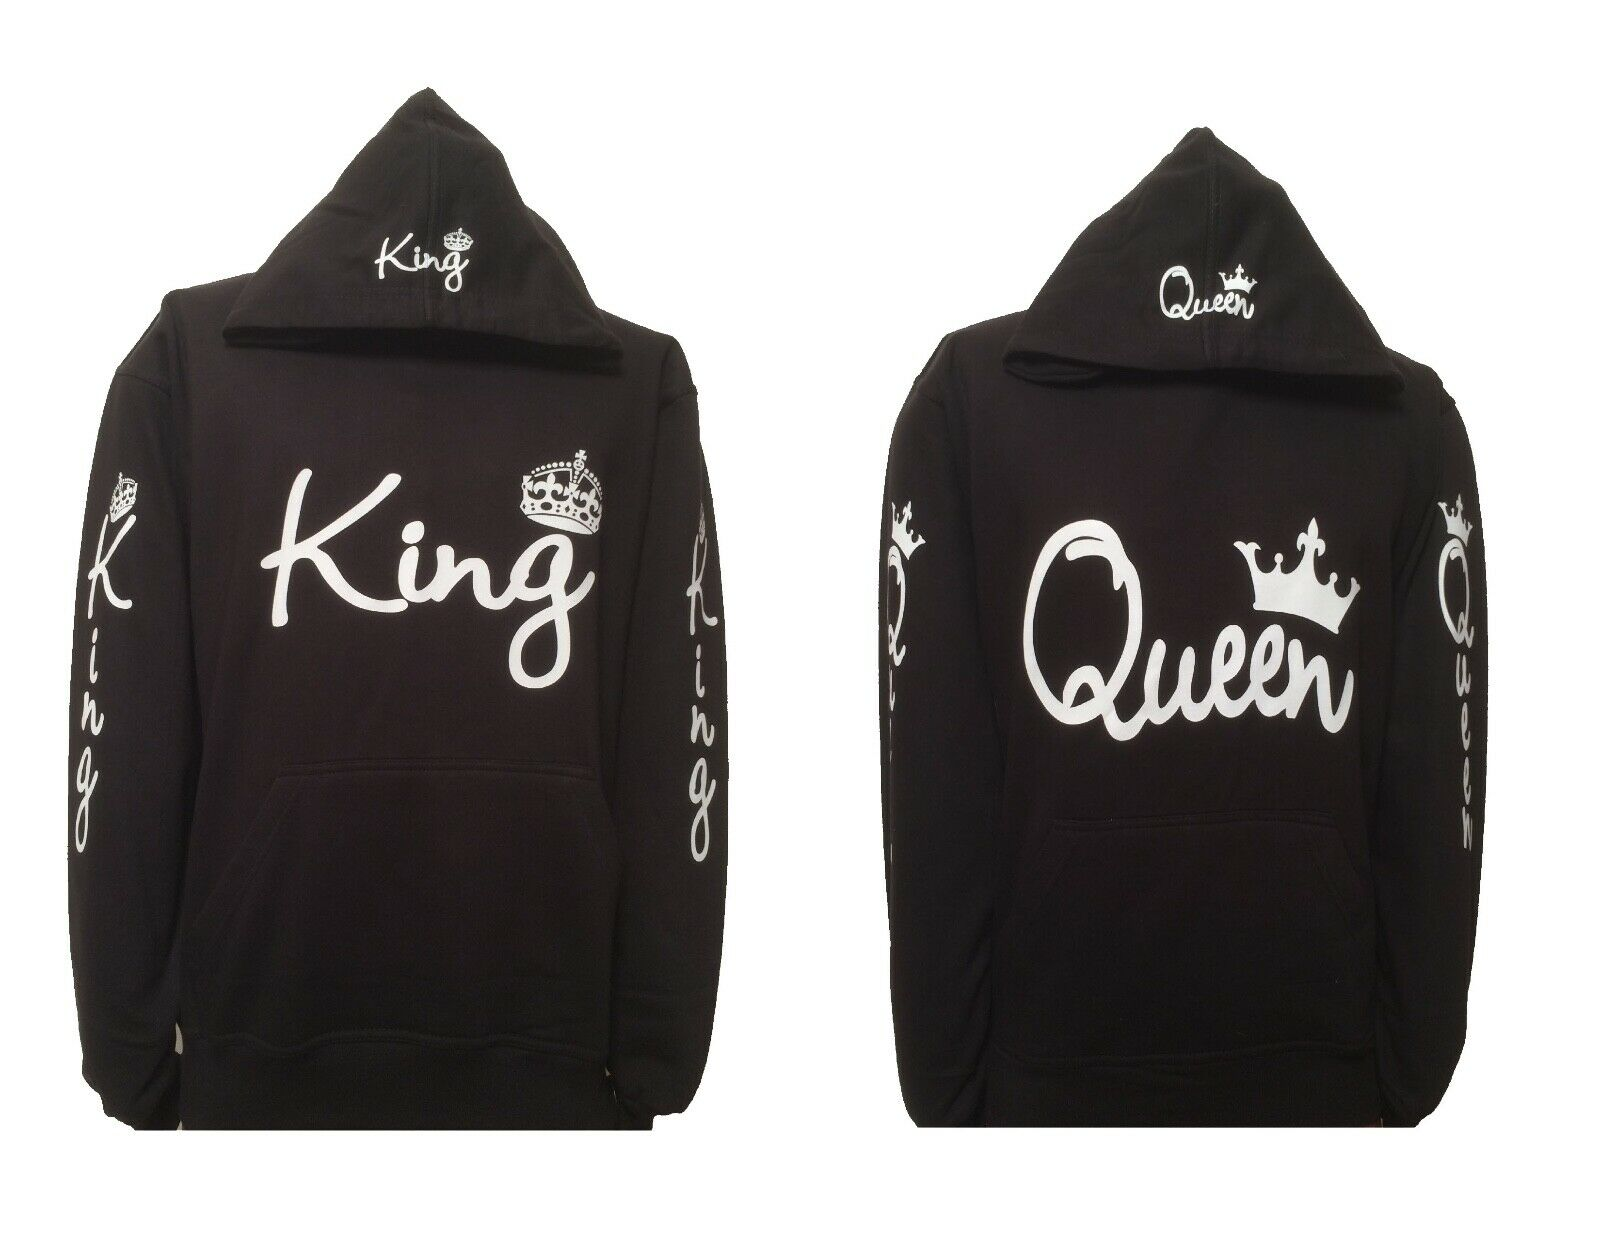 King and queen hoodies for a couple hooded sweatshirt adults+kids